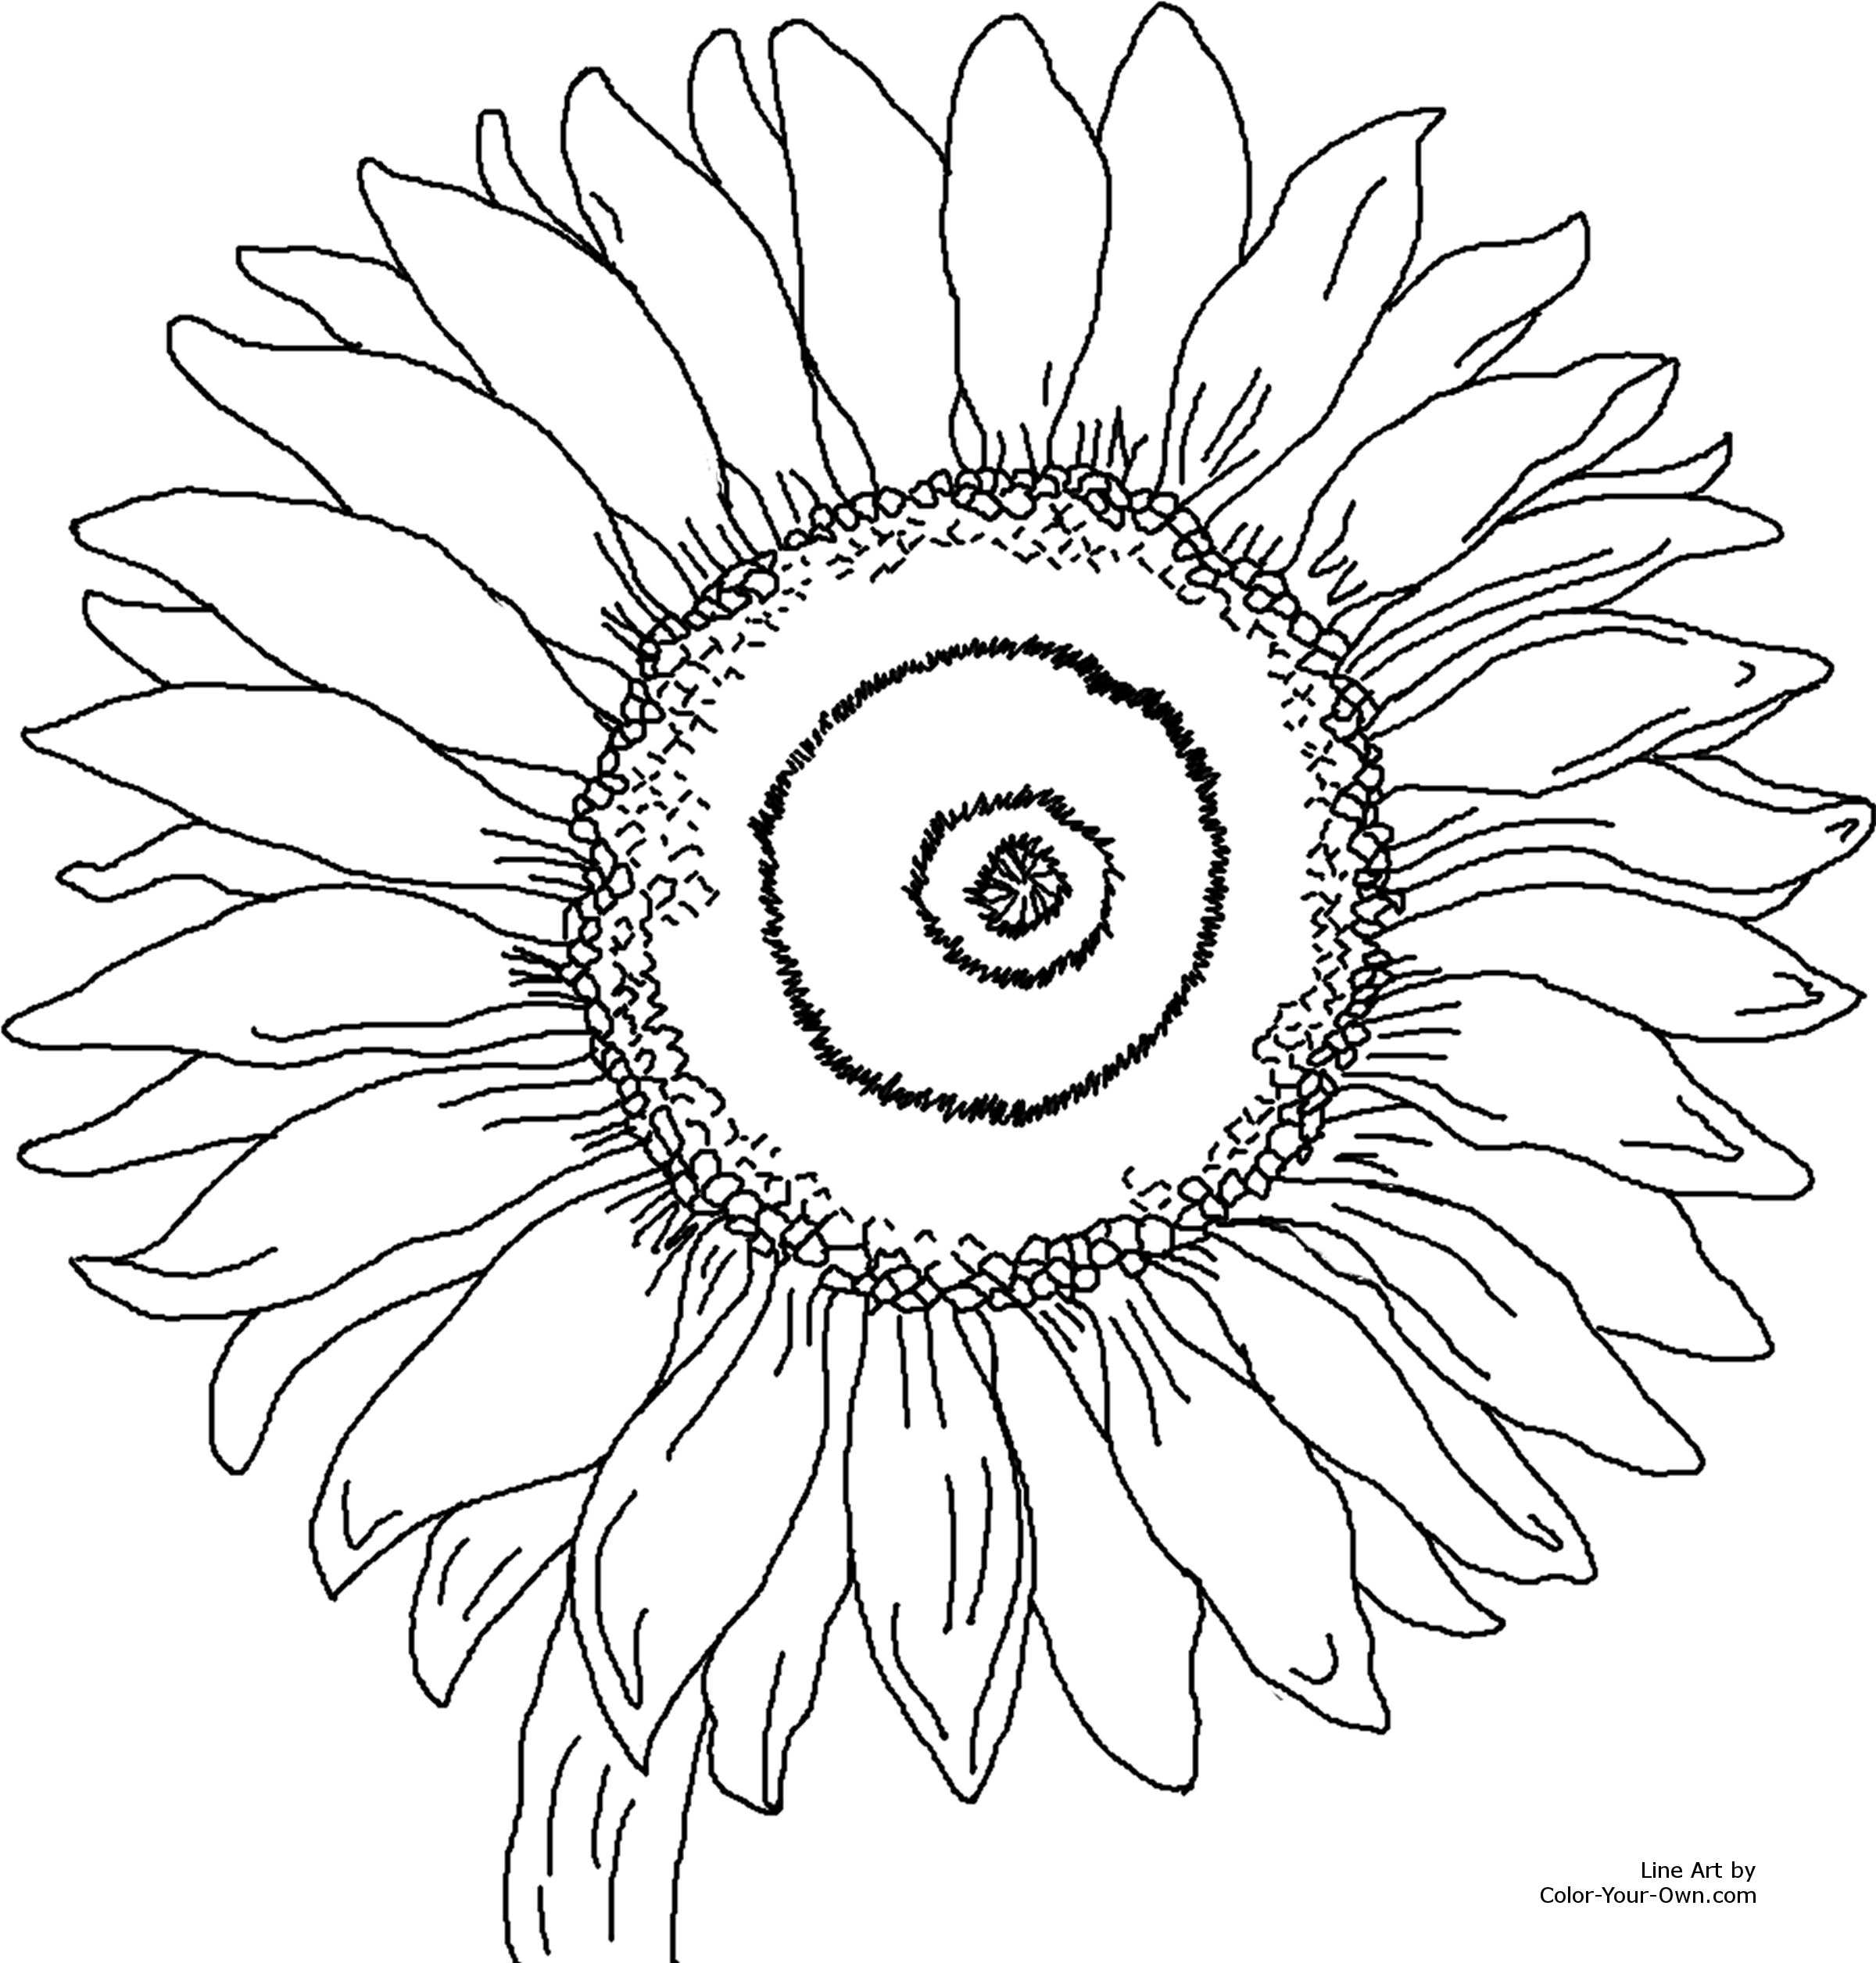 5 Images of Sunflower Coloring Pages Printable